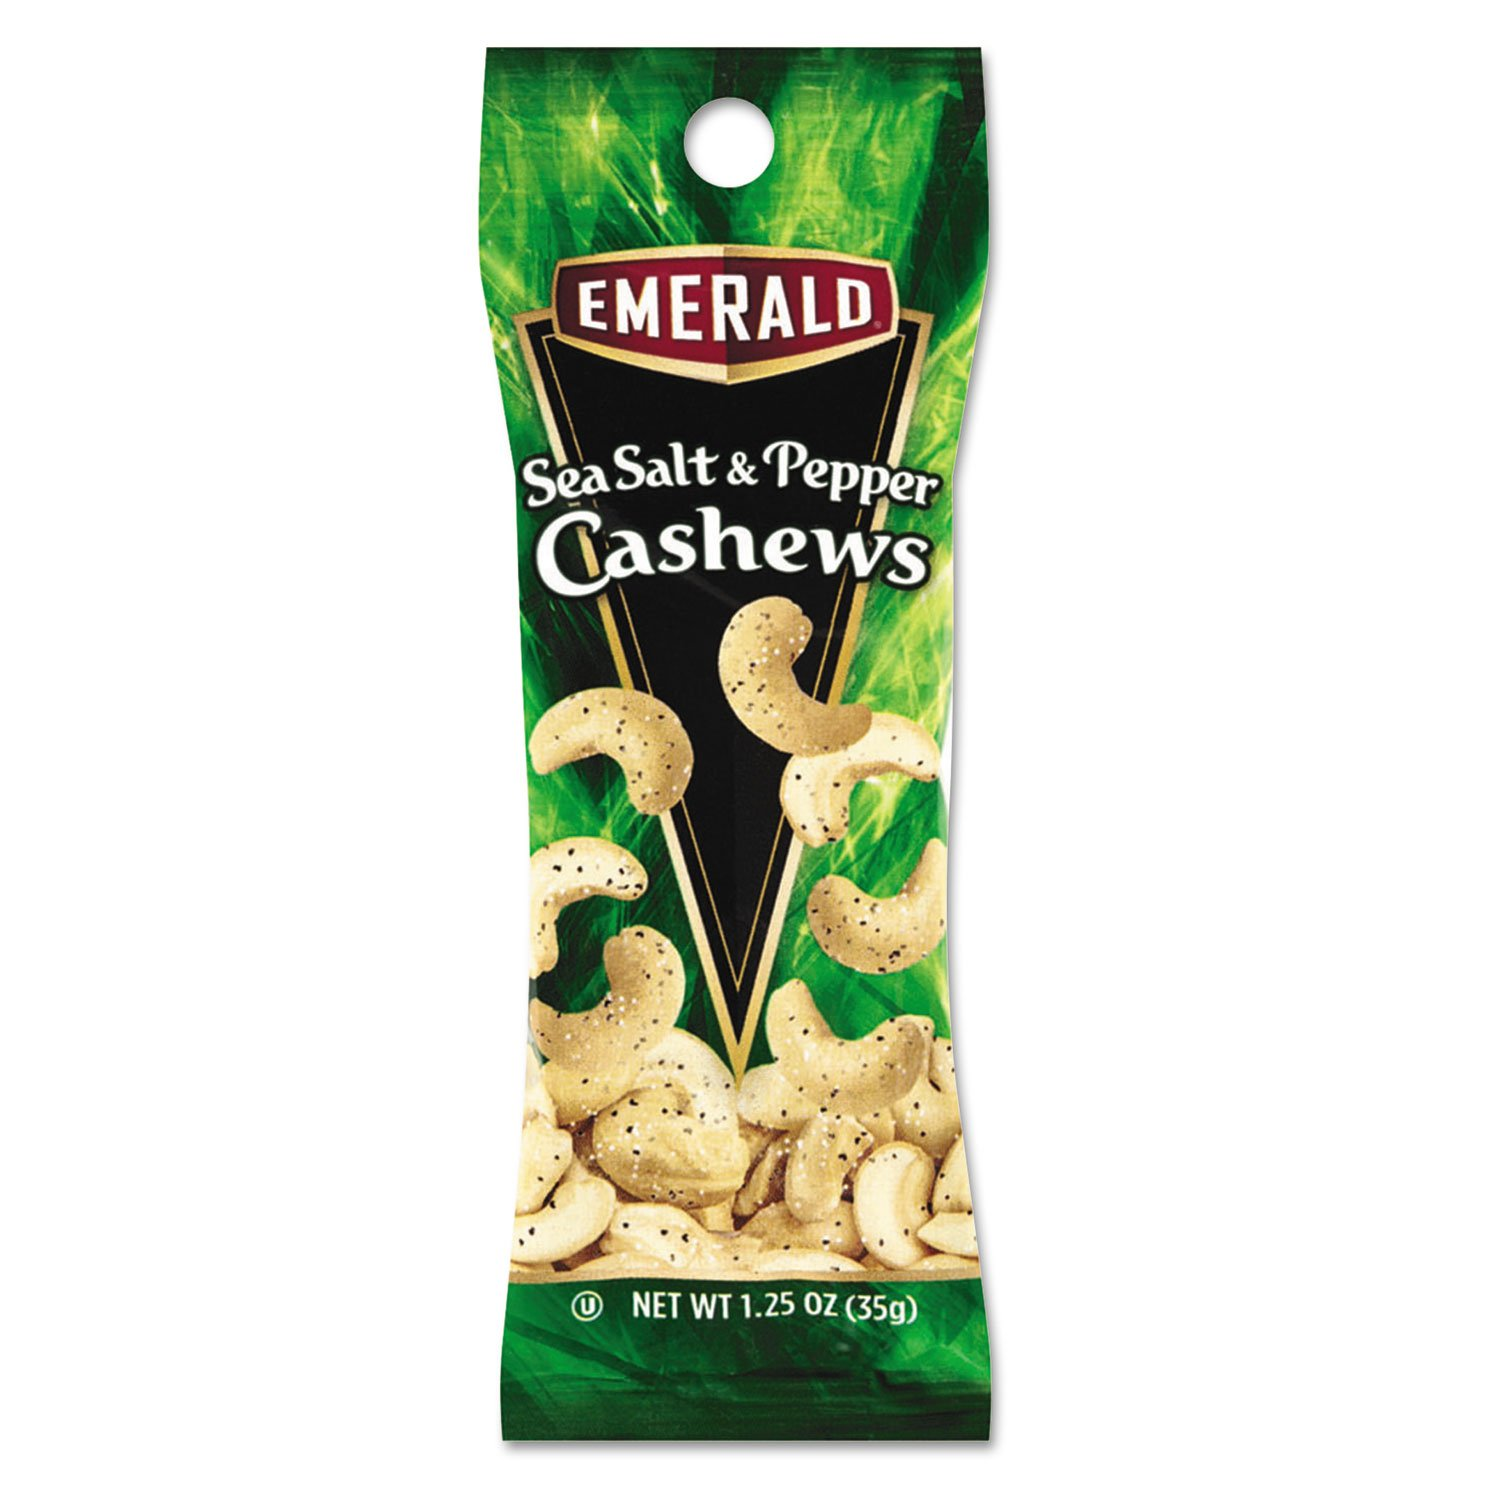 Emerald 93817 Sea Salt and Pepper Cashews, 1.25 oz. Tube Package, 12/Box